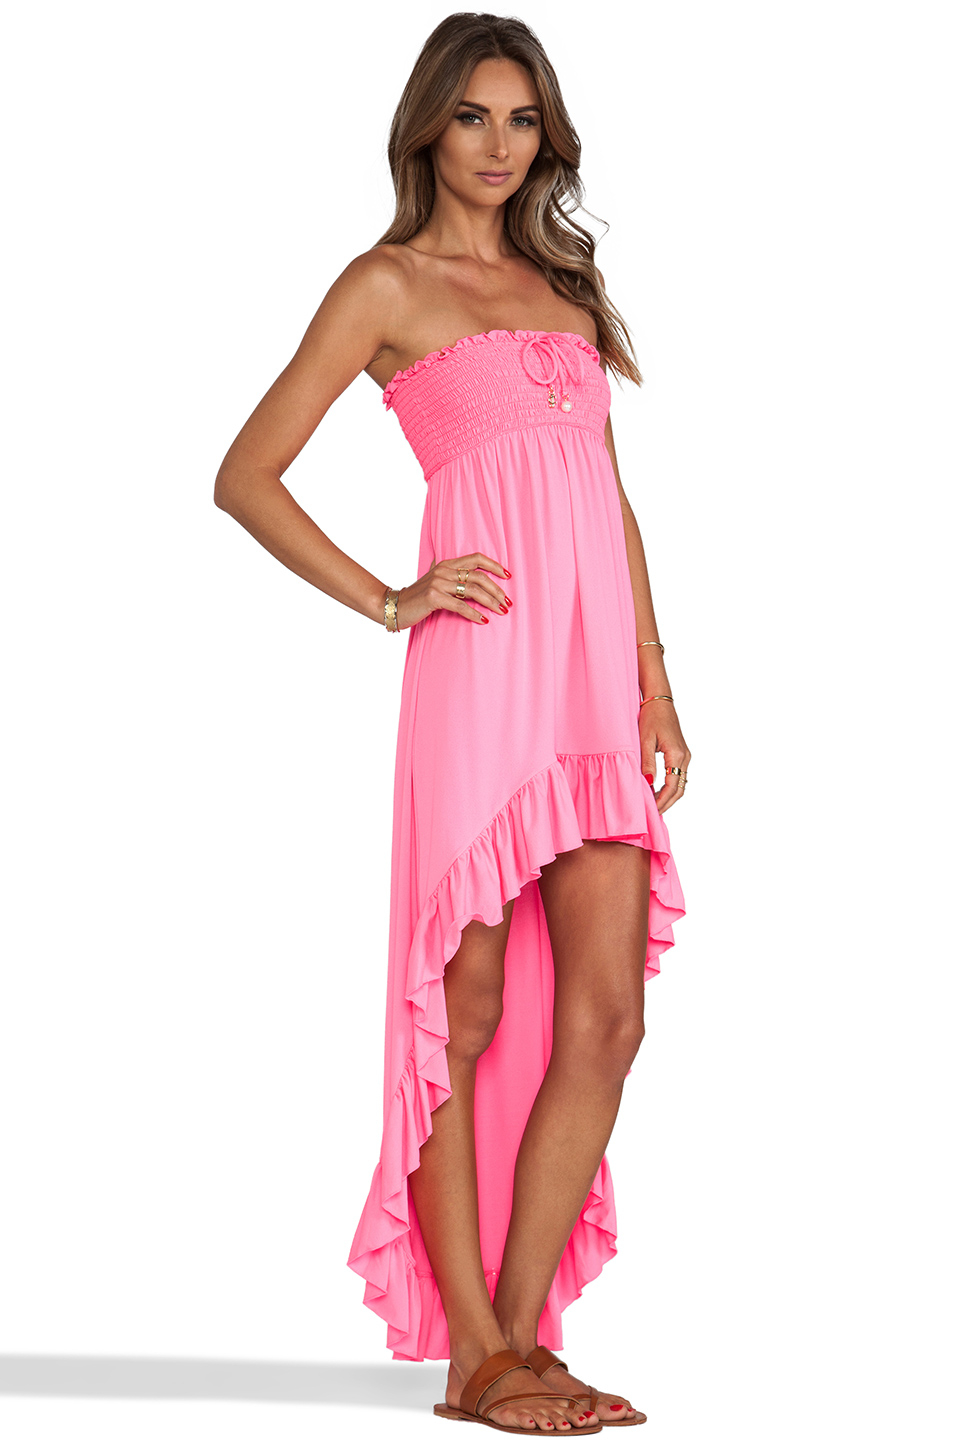 Lyst juicy couture bow chic high low cover up dress in pink for High couture dresses